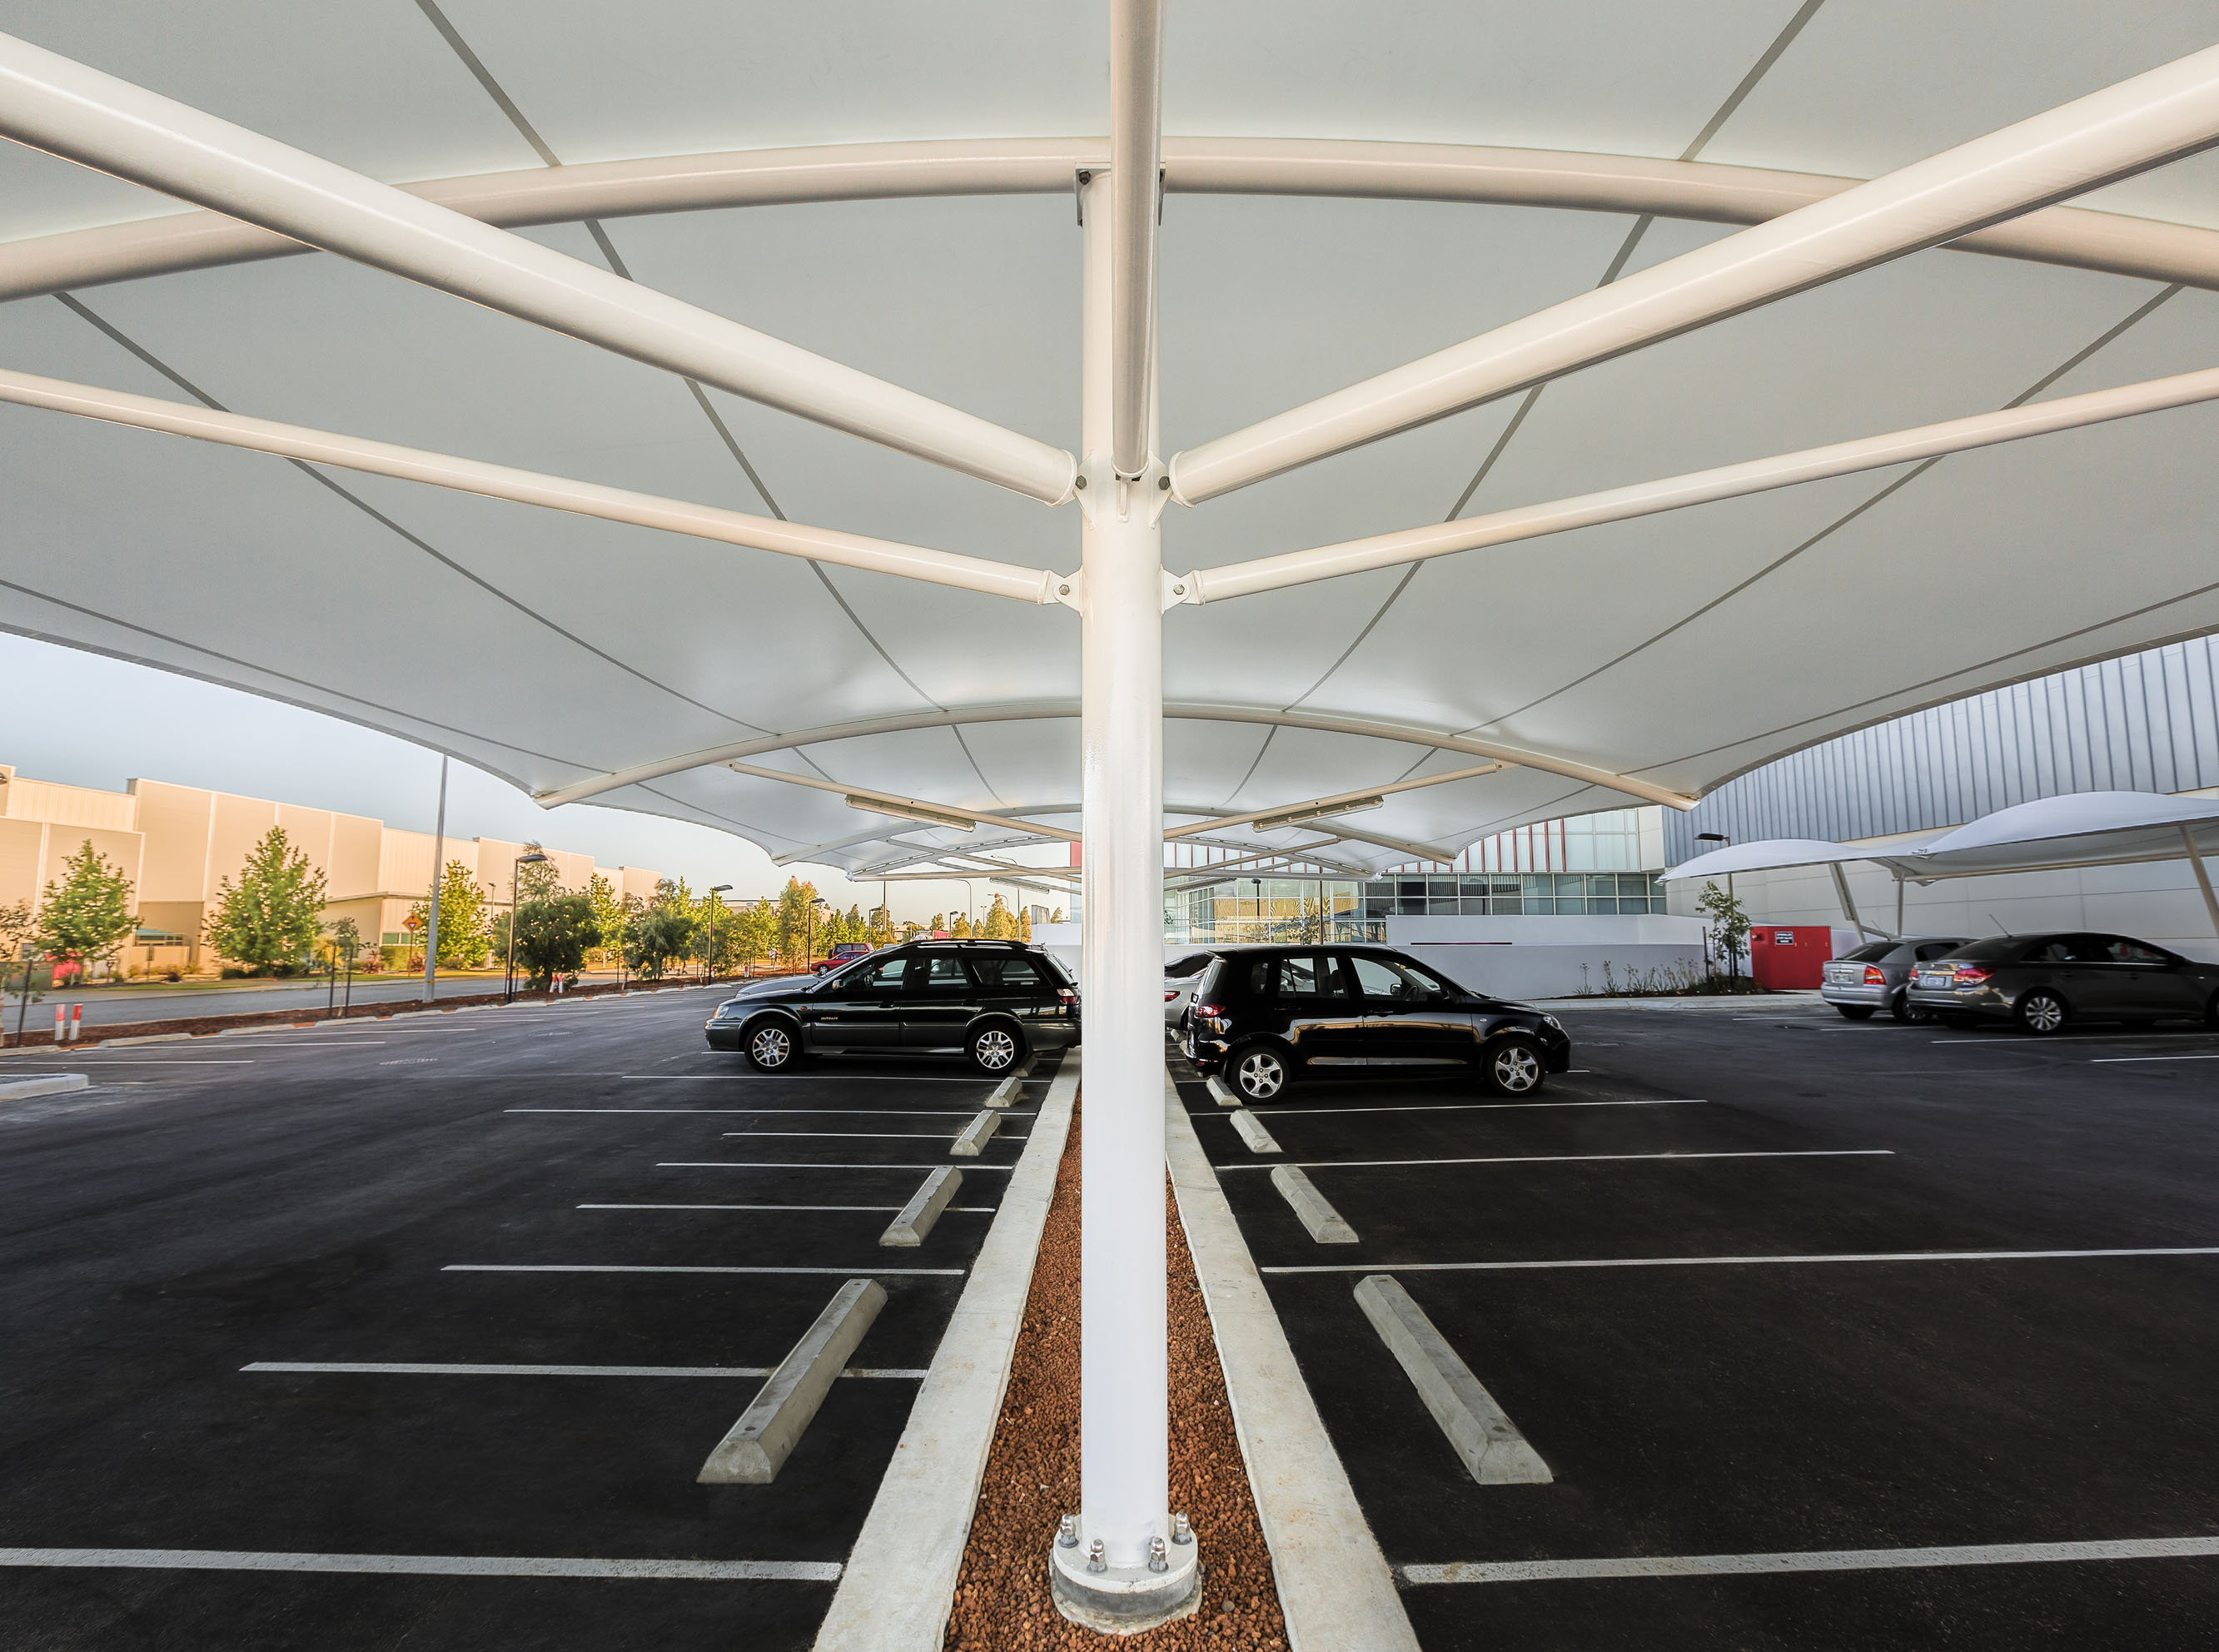 13058-roy-hill-car-park-pvc-2014-fs-5